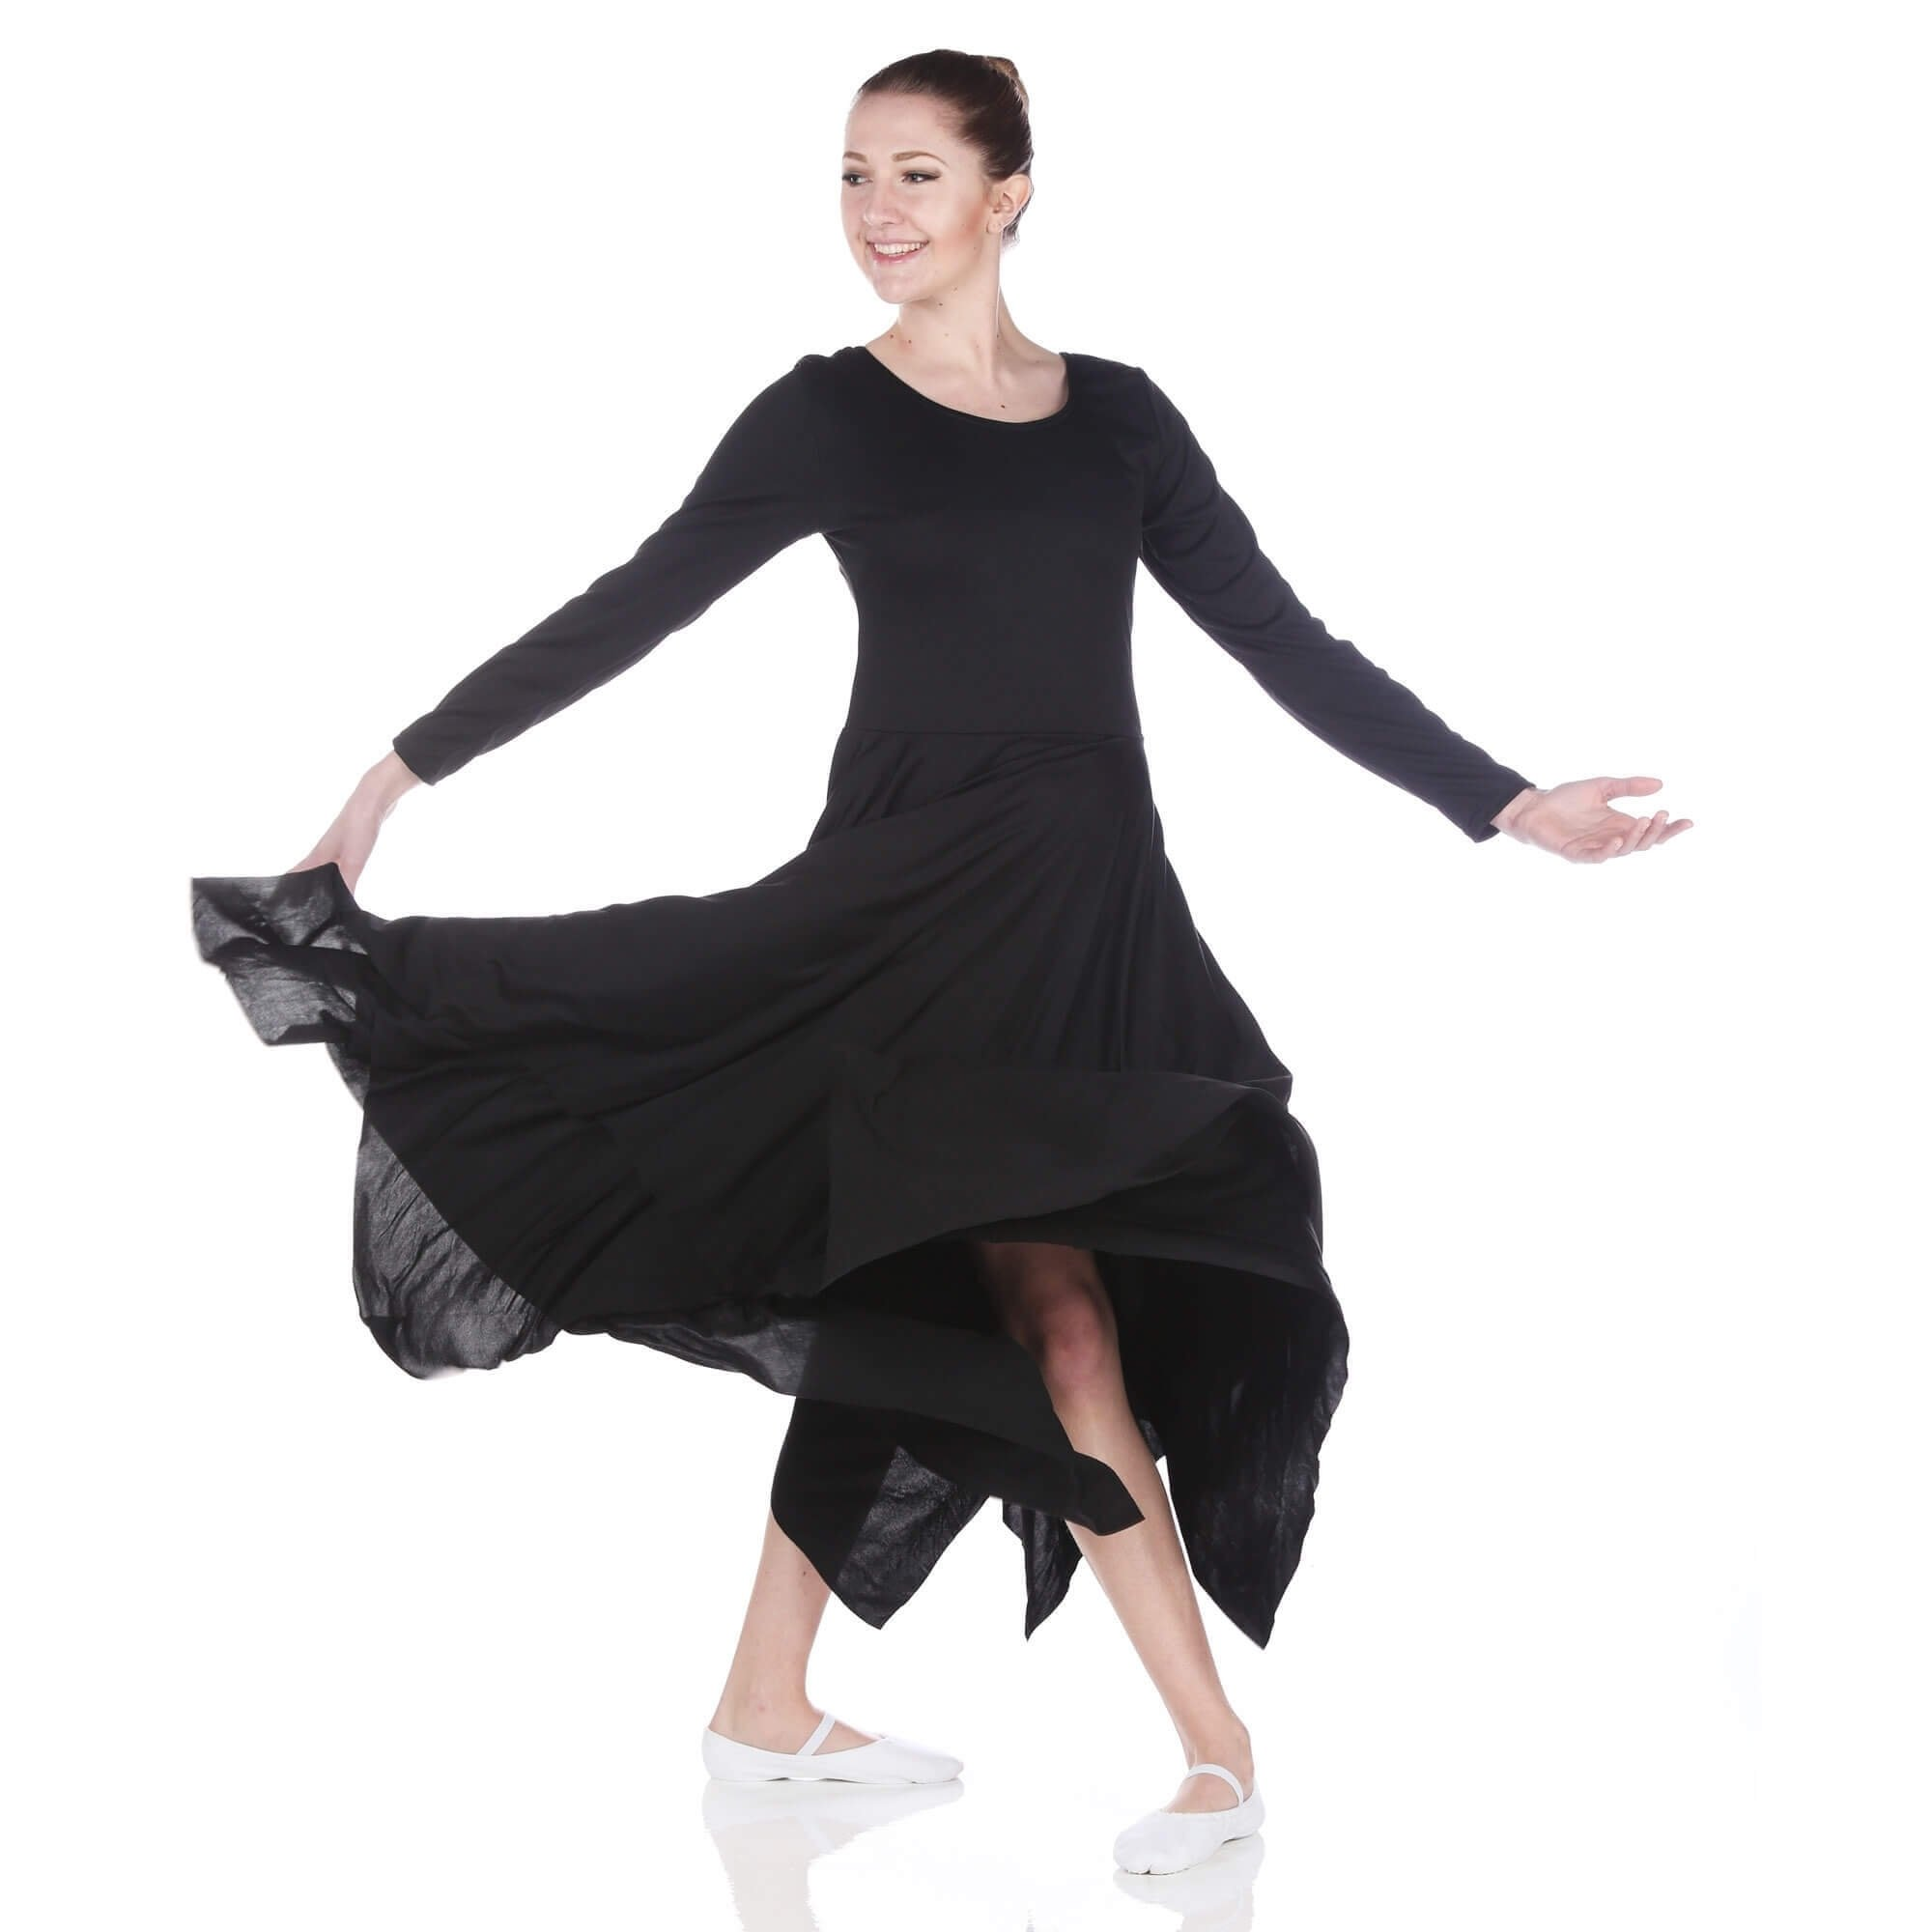 Danzcue Celebration of Spirit long sleeve dance dress